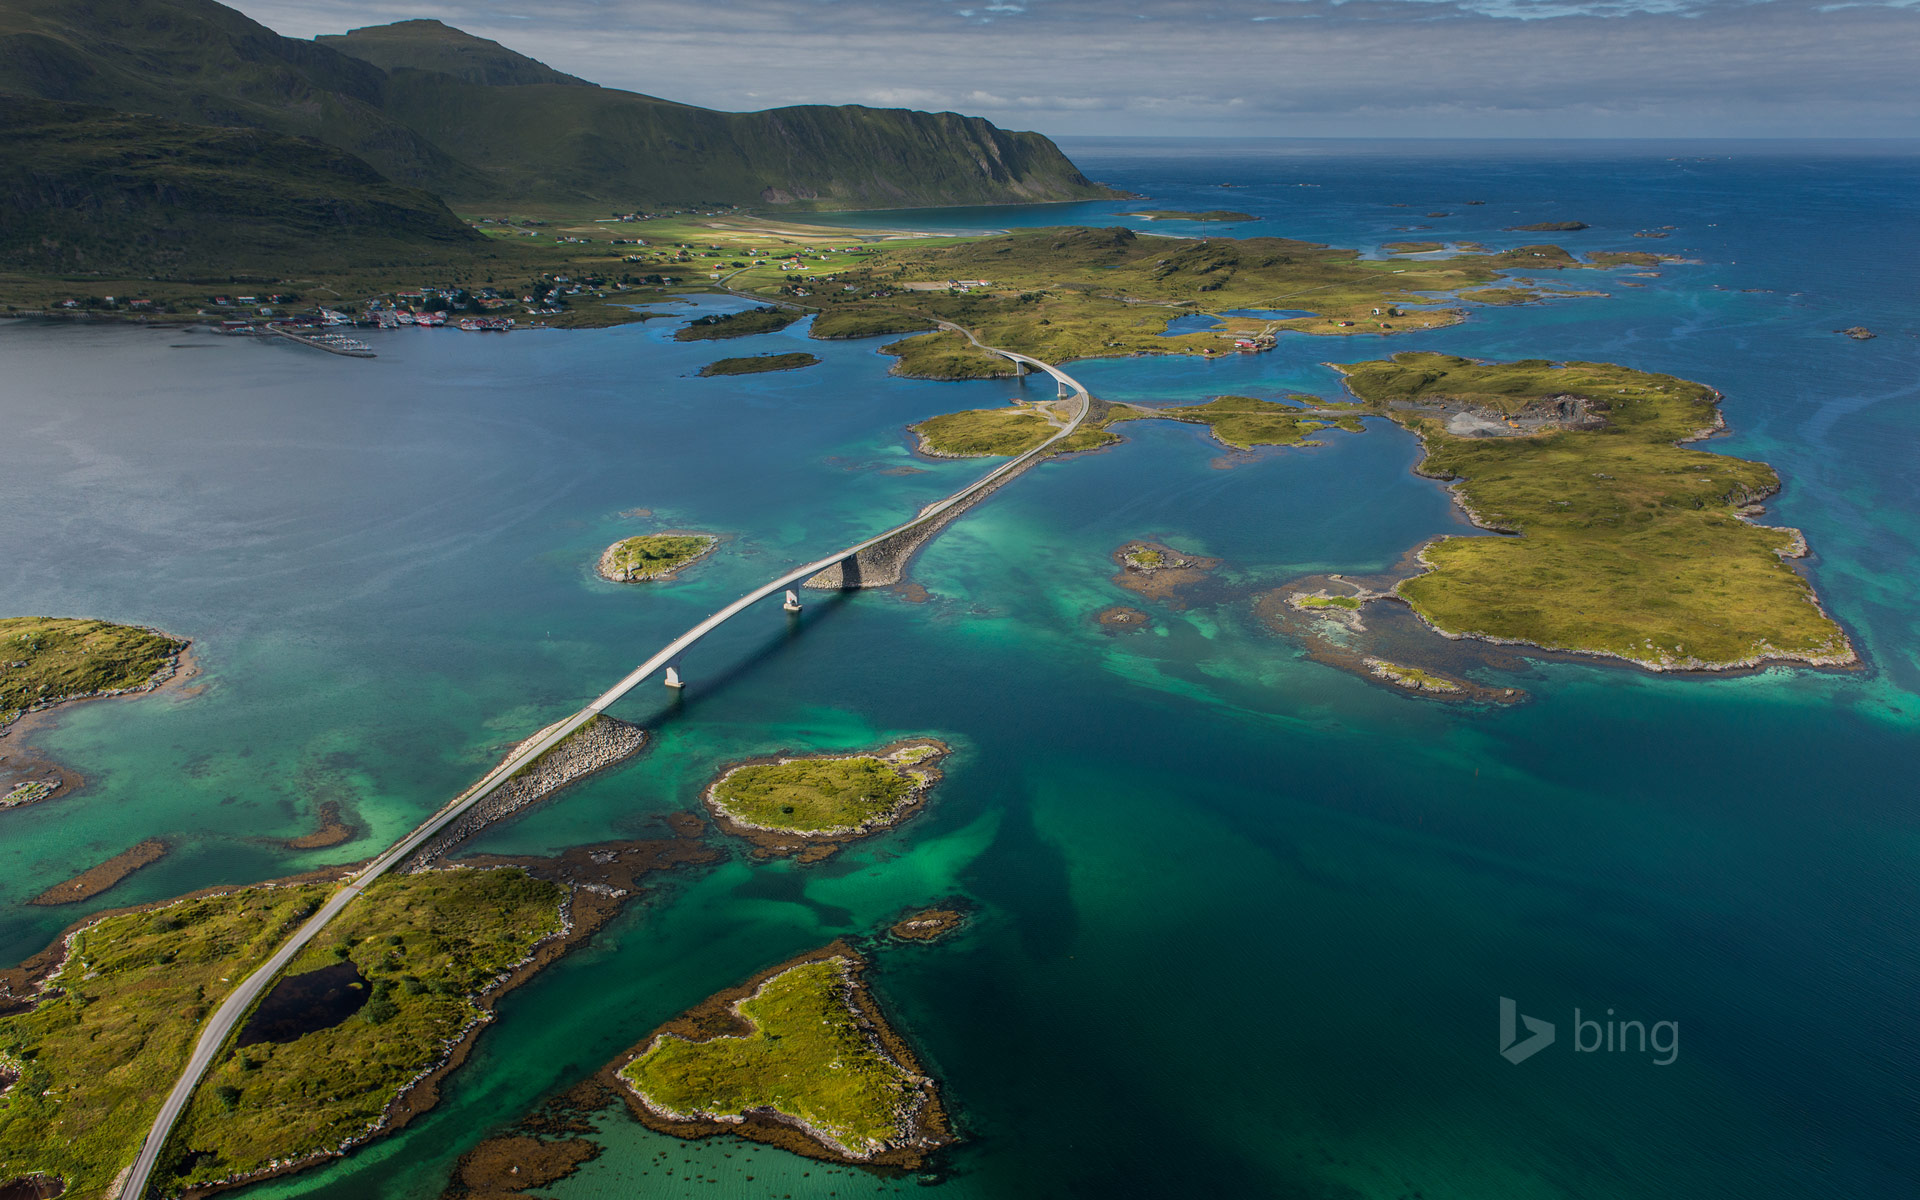 Bridge to the village of Fredvang on Moskenes Island in the Lofoten Islands, Norway